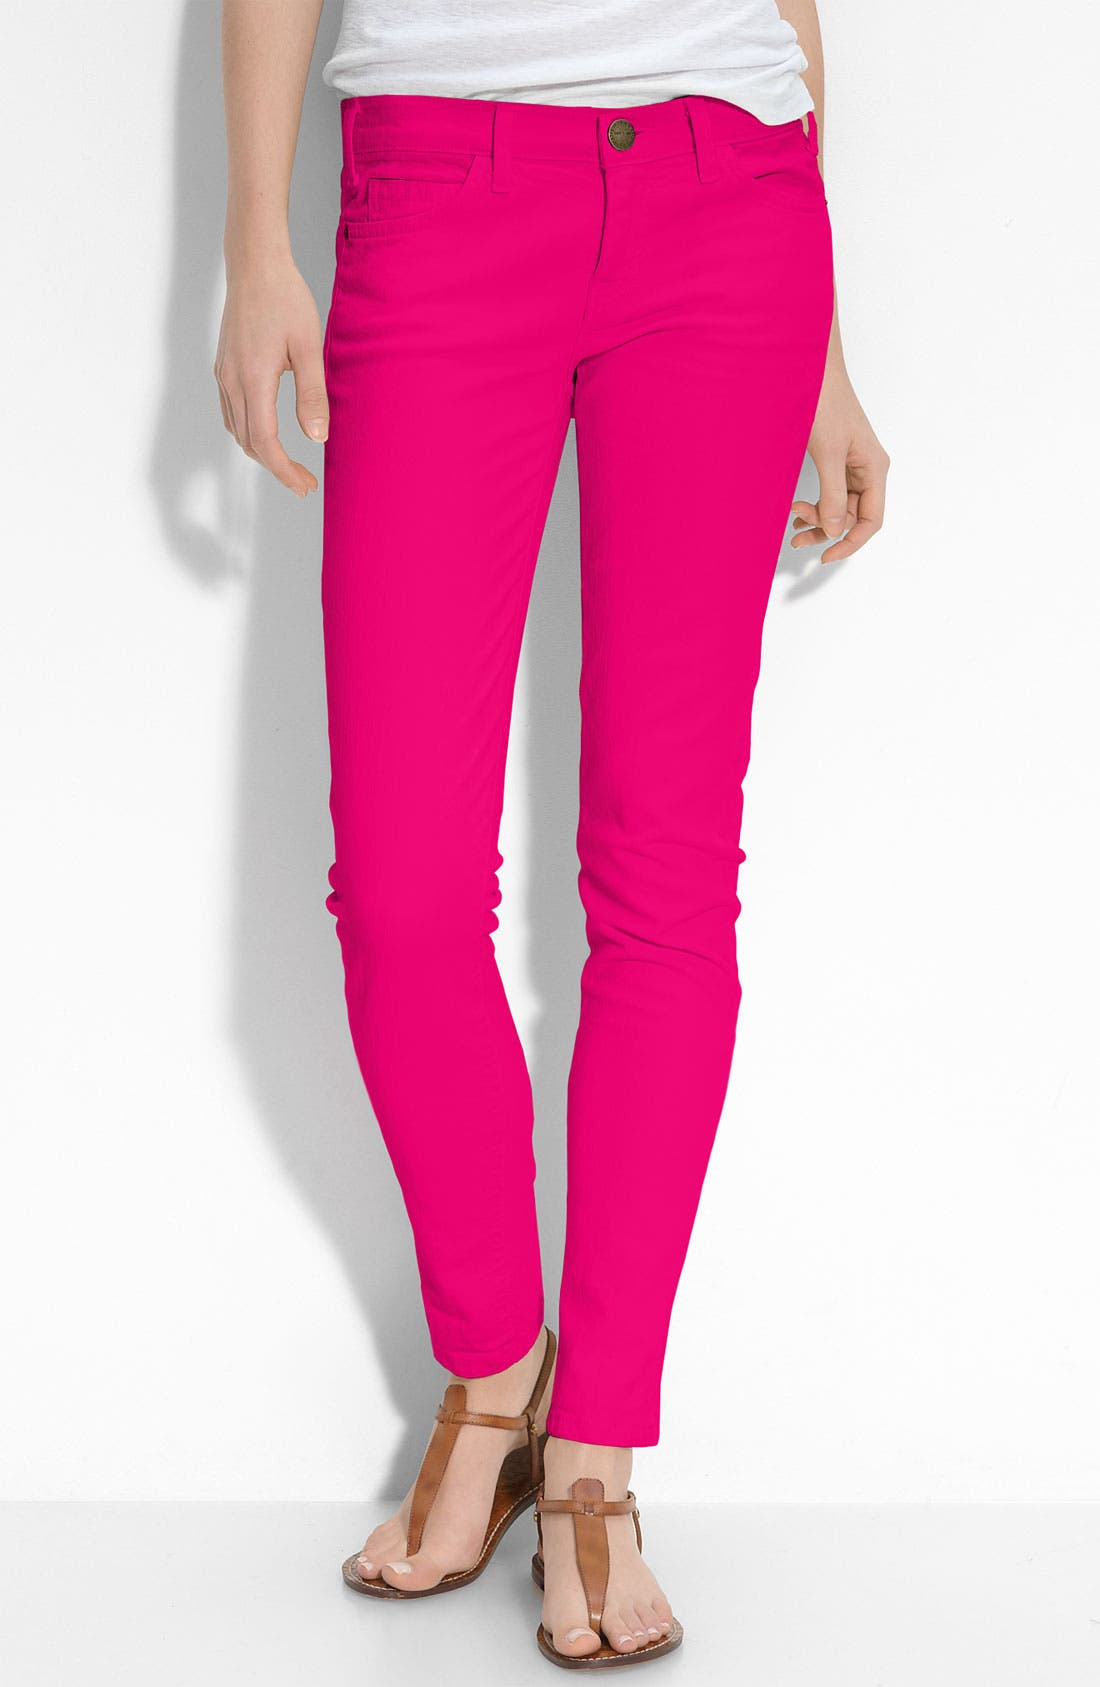 Alternate Image 1 Selected - Current/Elliott Skinny Stretch Ankle Jeans (Bright Rose Wash)